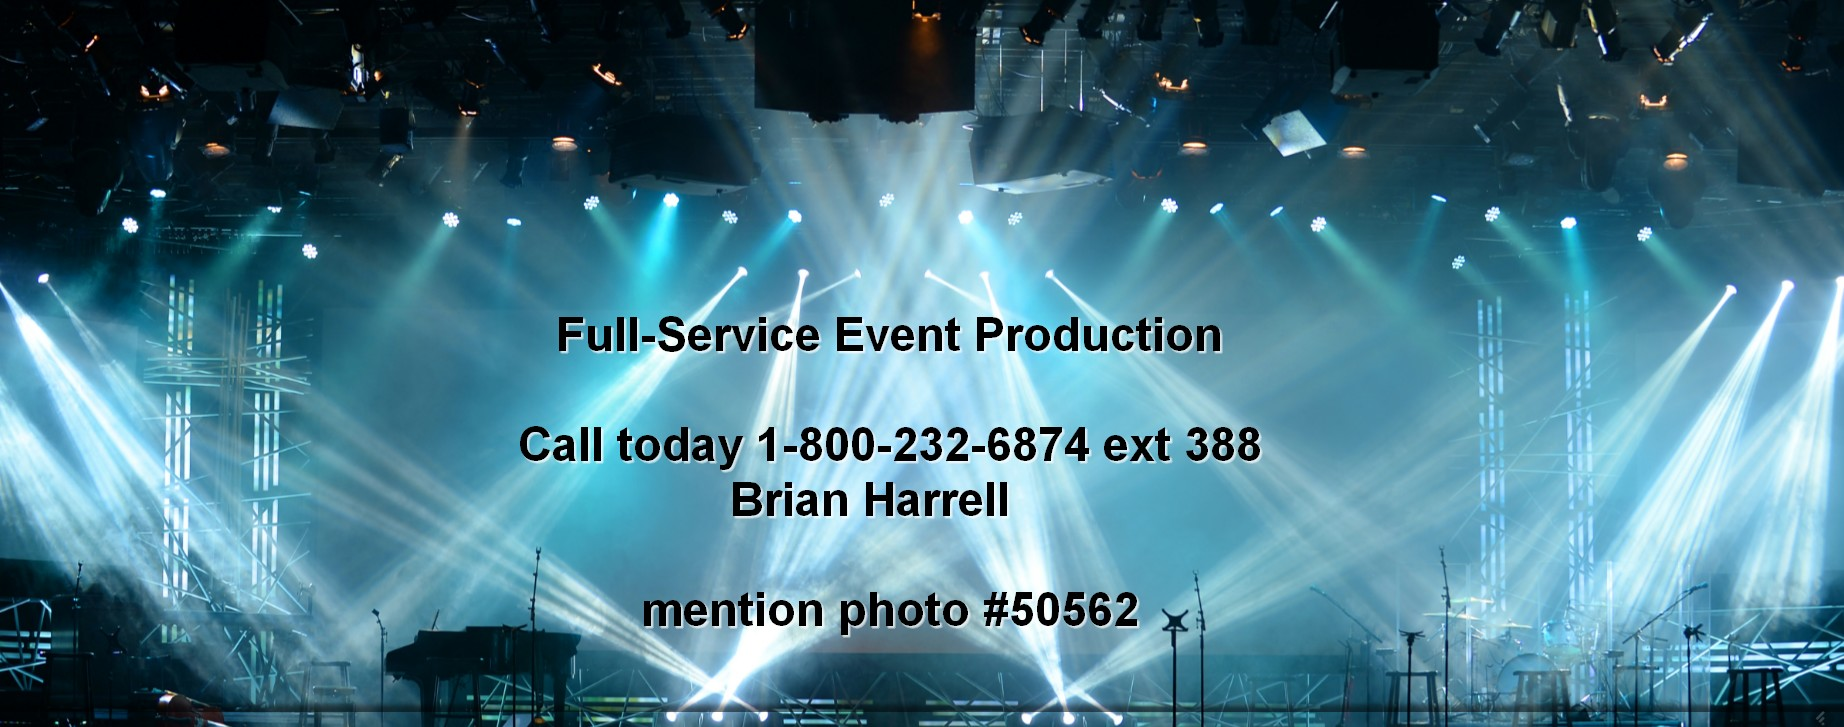 full service event production concert production services nationwide 50562 Live Event Production